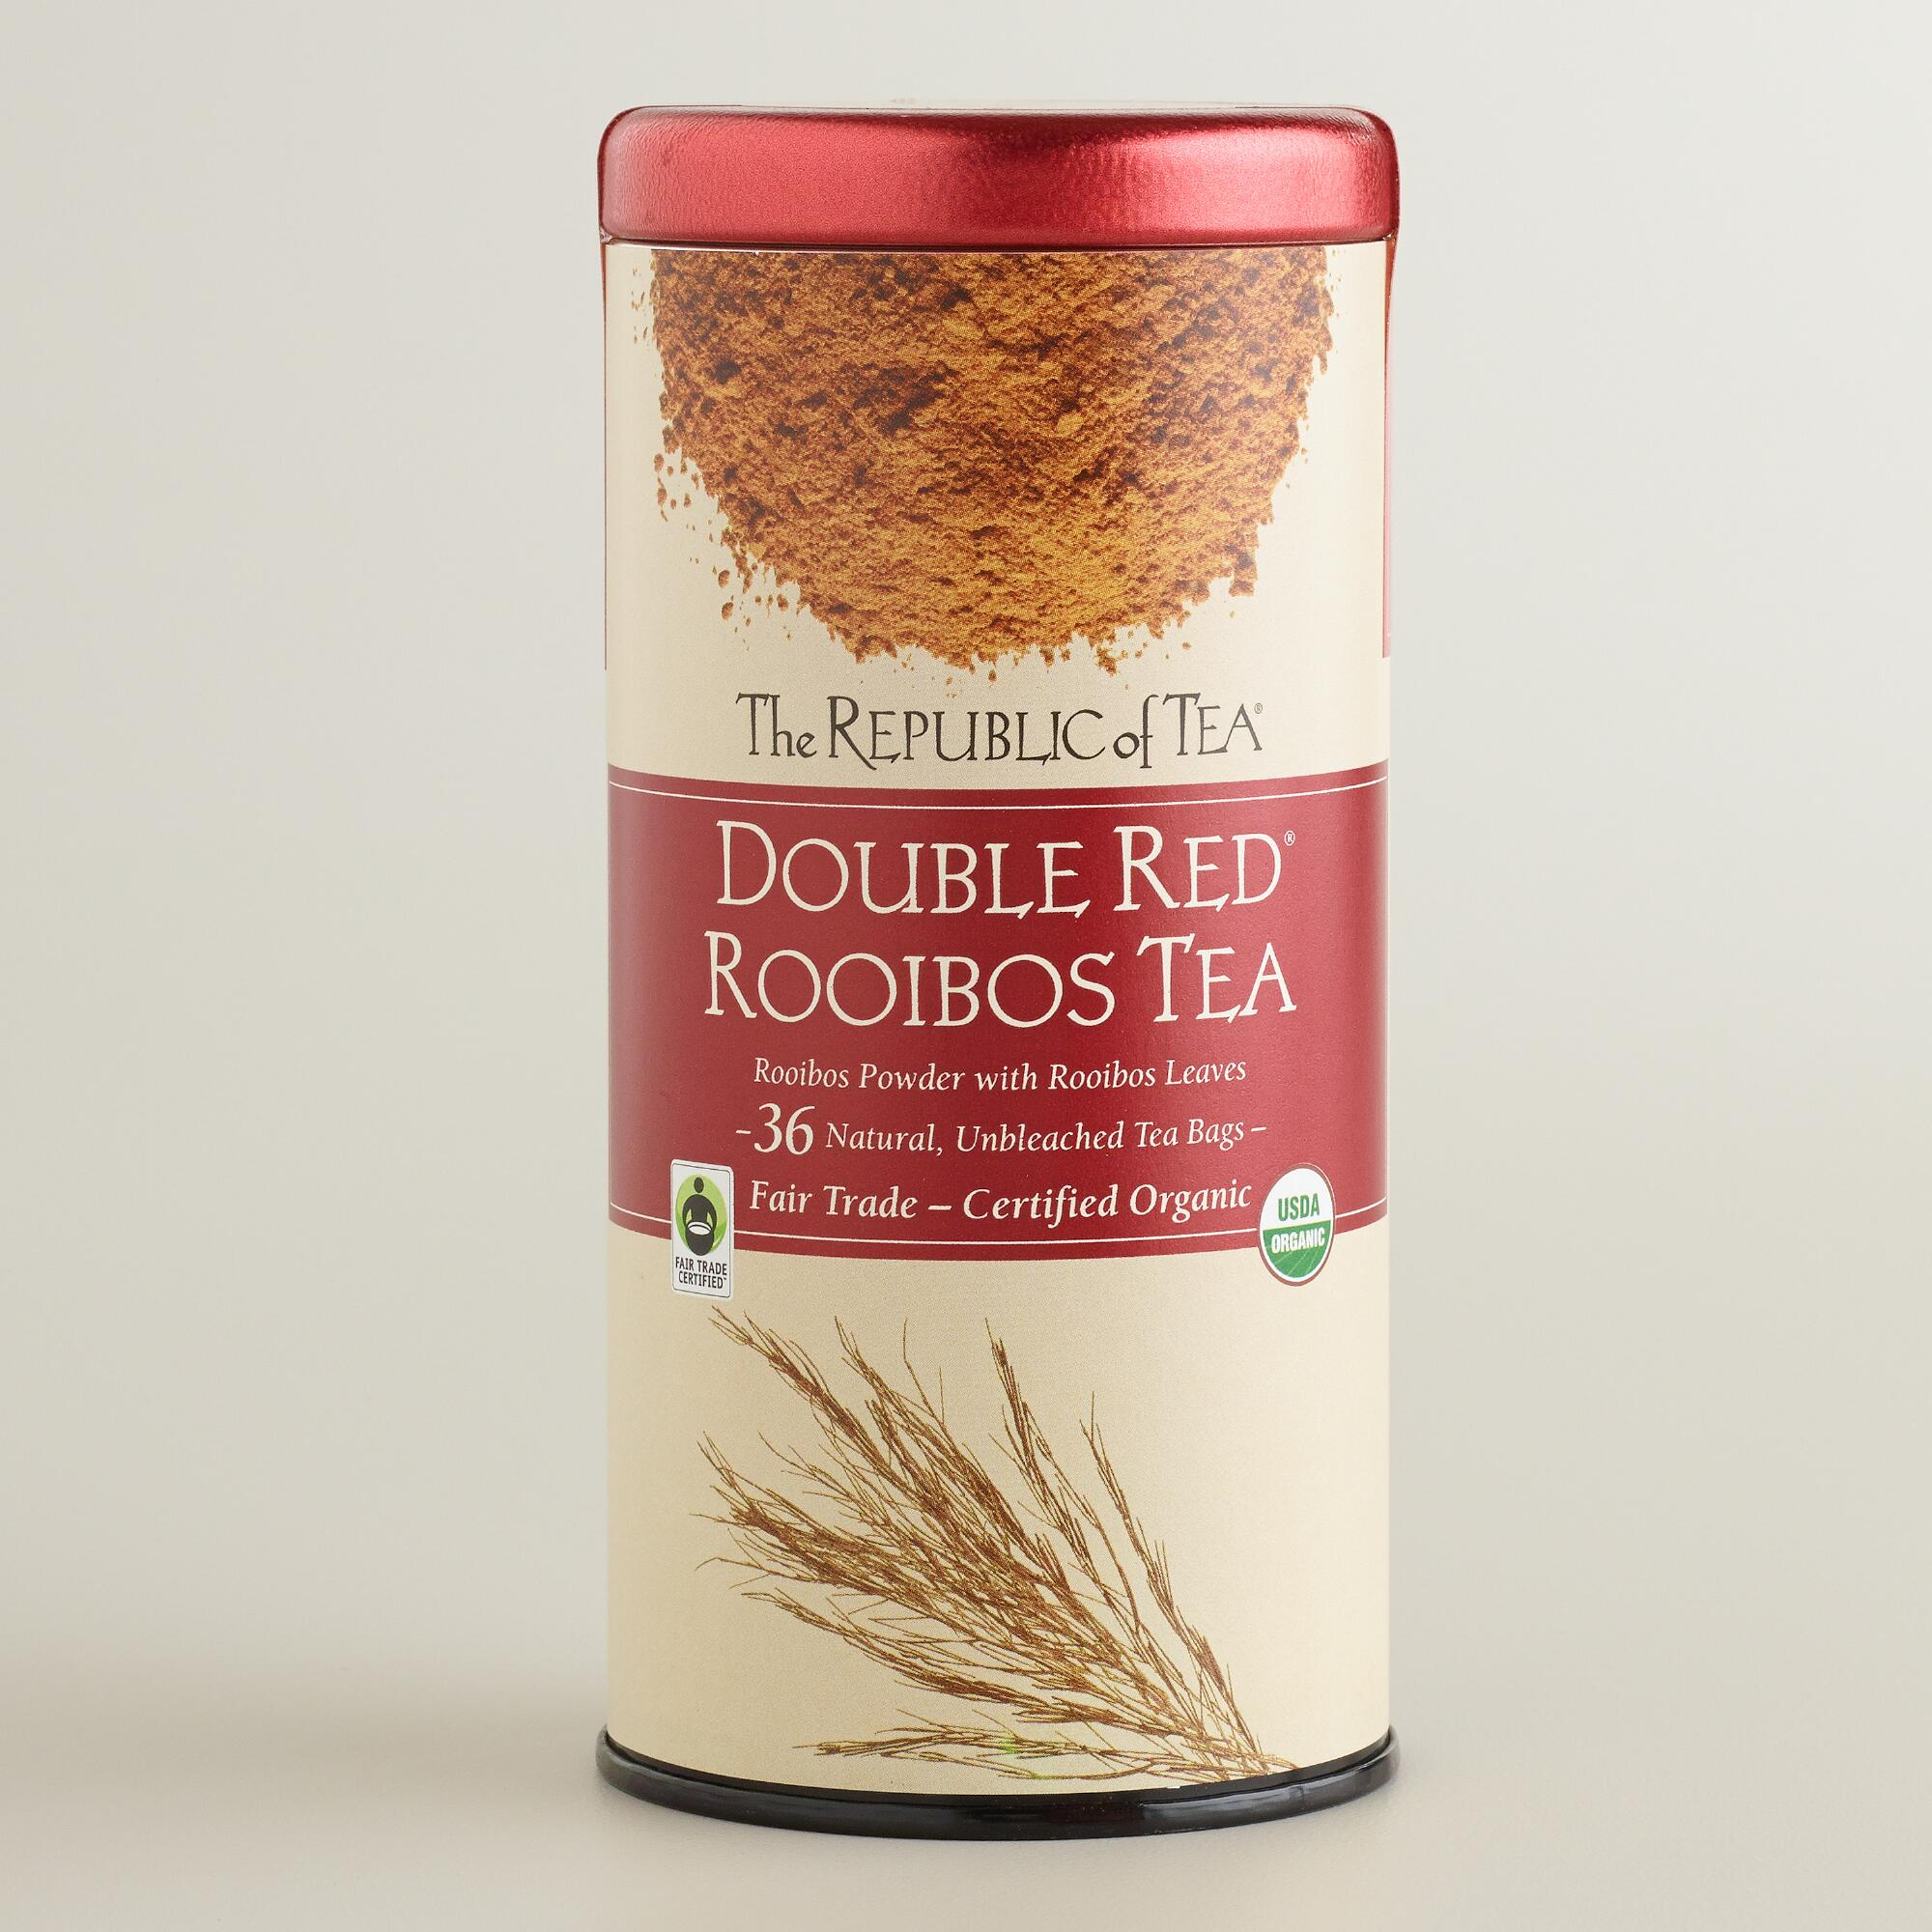 Republic of Tea: Republic of Tea is often pricey (but really, not too much pricier than the others here) but they're often available in your local grocery store. Between their selection of teas.